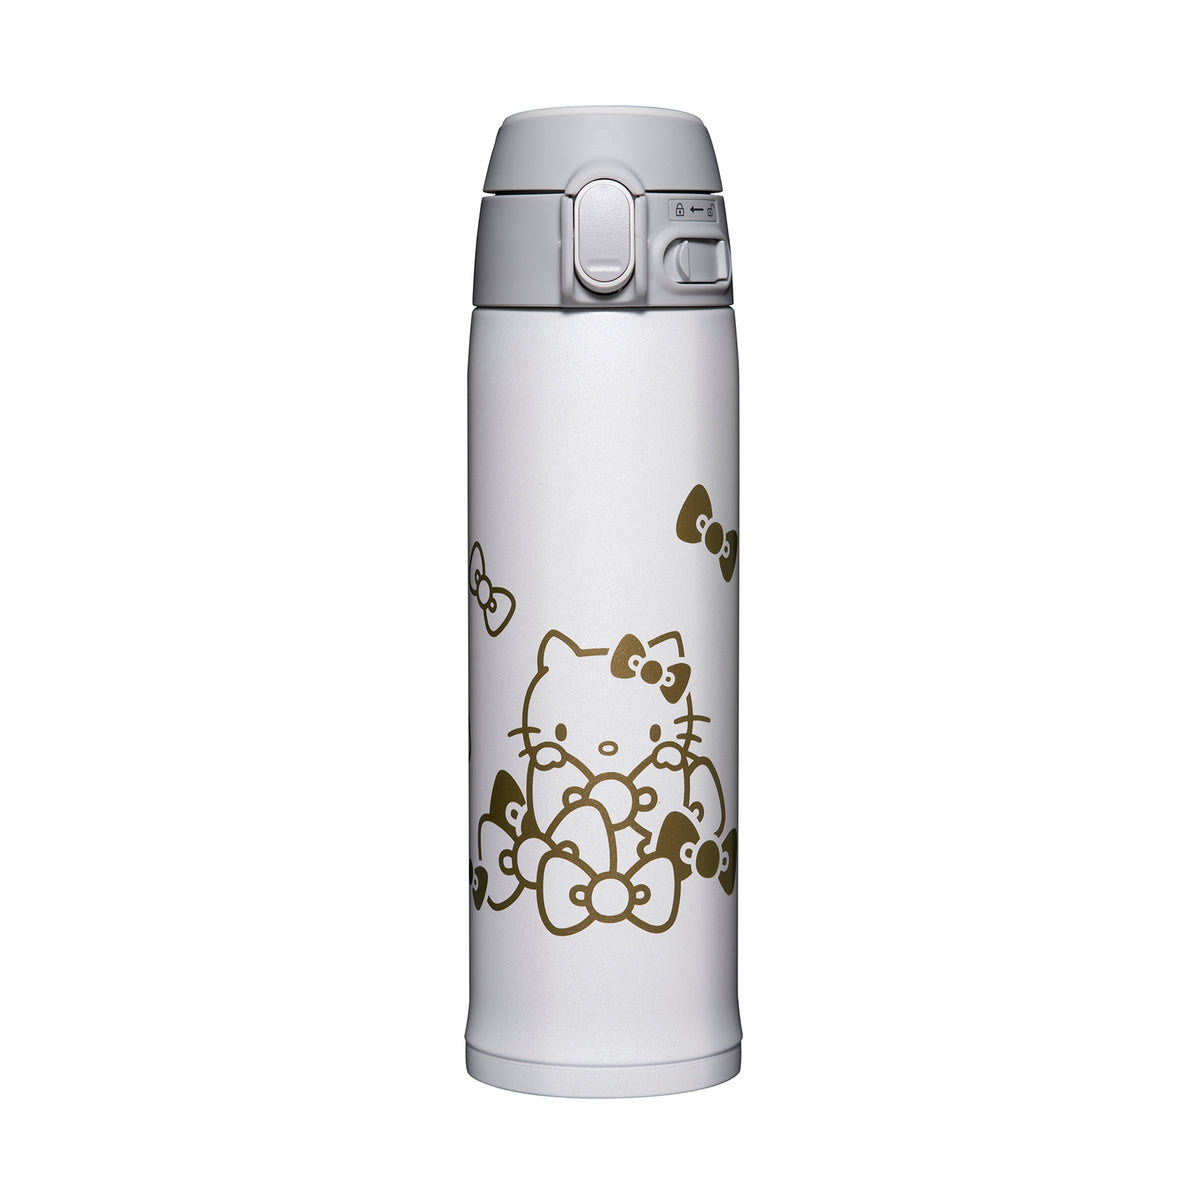 Zojirushi x Hello Kitty Stainless Mug White